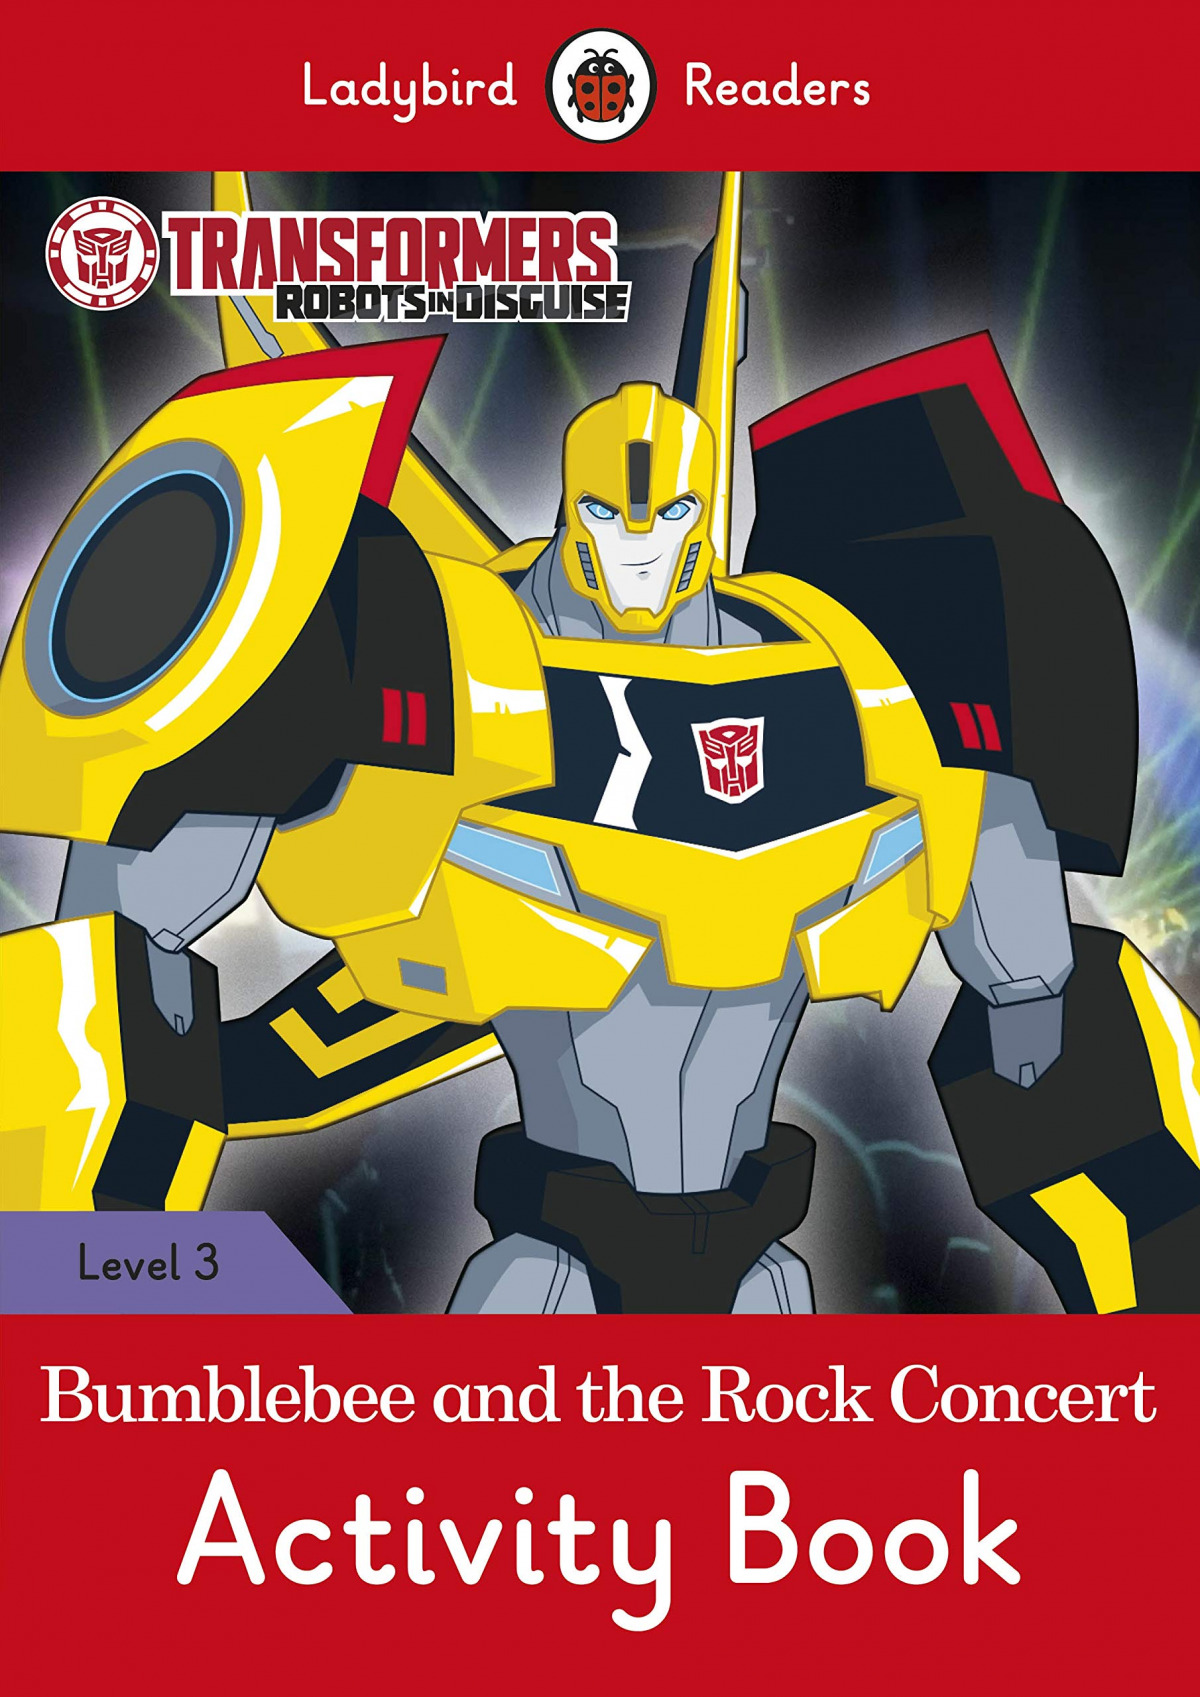 BUMBLEE AND THE ROCK CONCERT. TRANSFORMERS. ACTIVITY BOOK